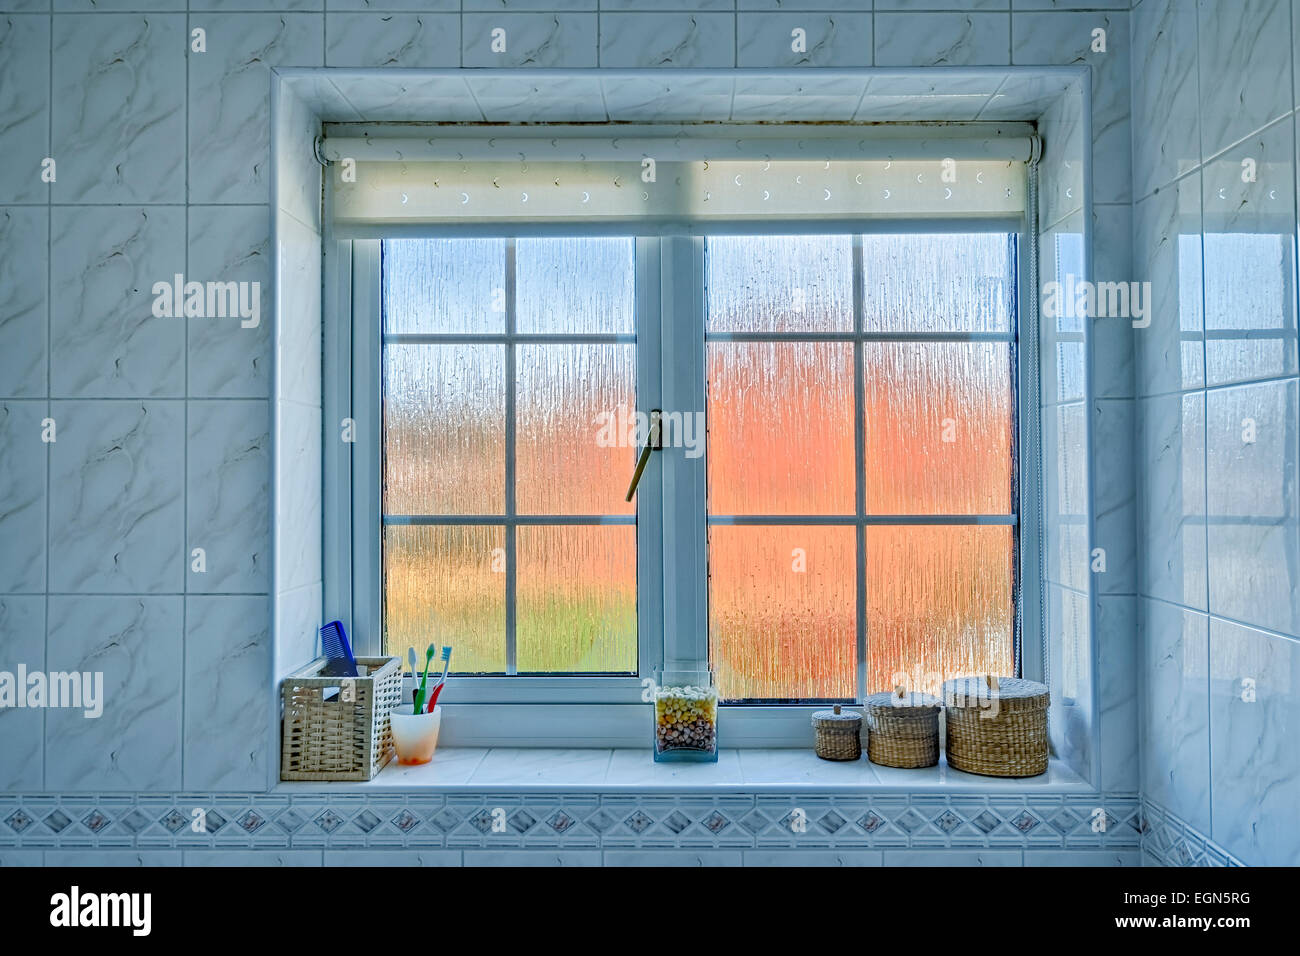 Frosted Glass Bathroom Window With Distorted Orange/blue Exterior, And  Various Items On The Windowsill.